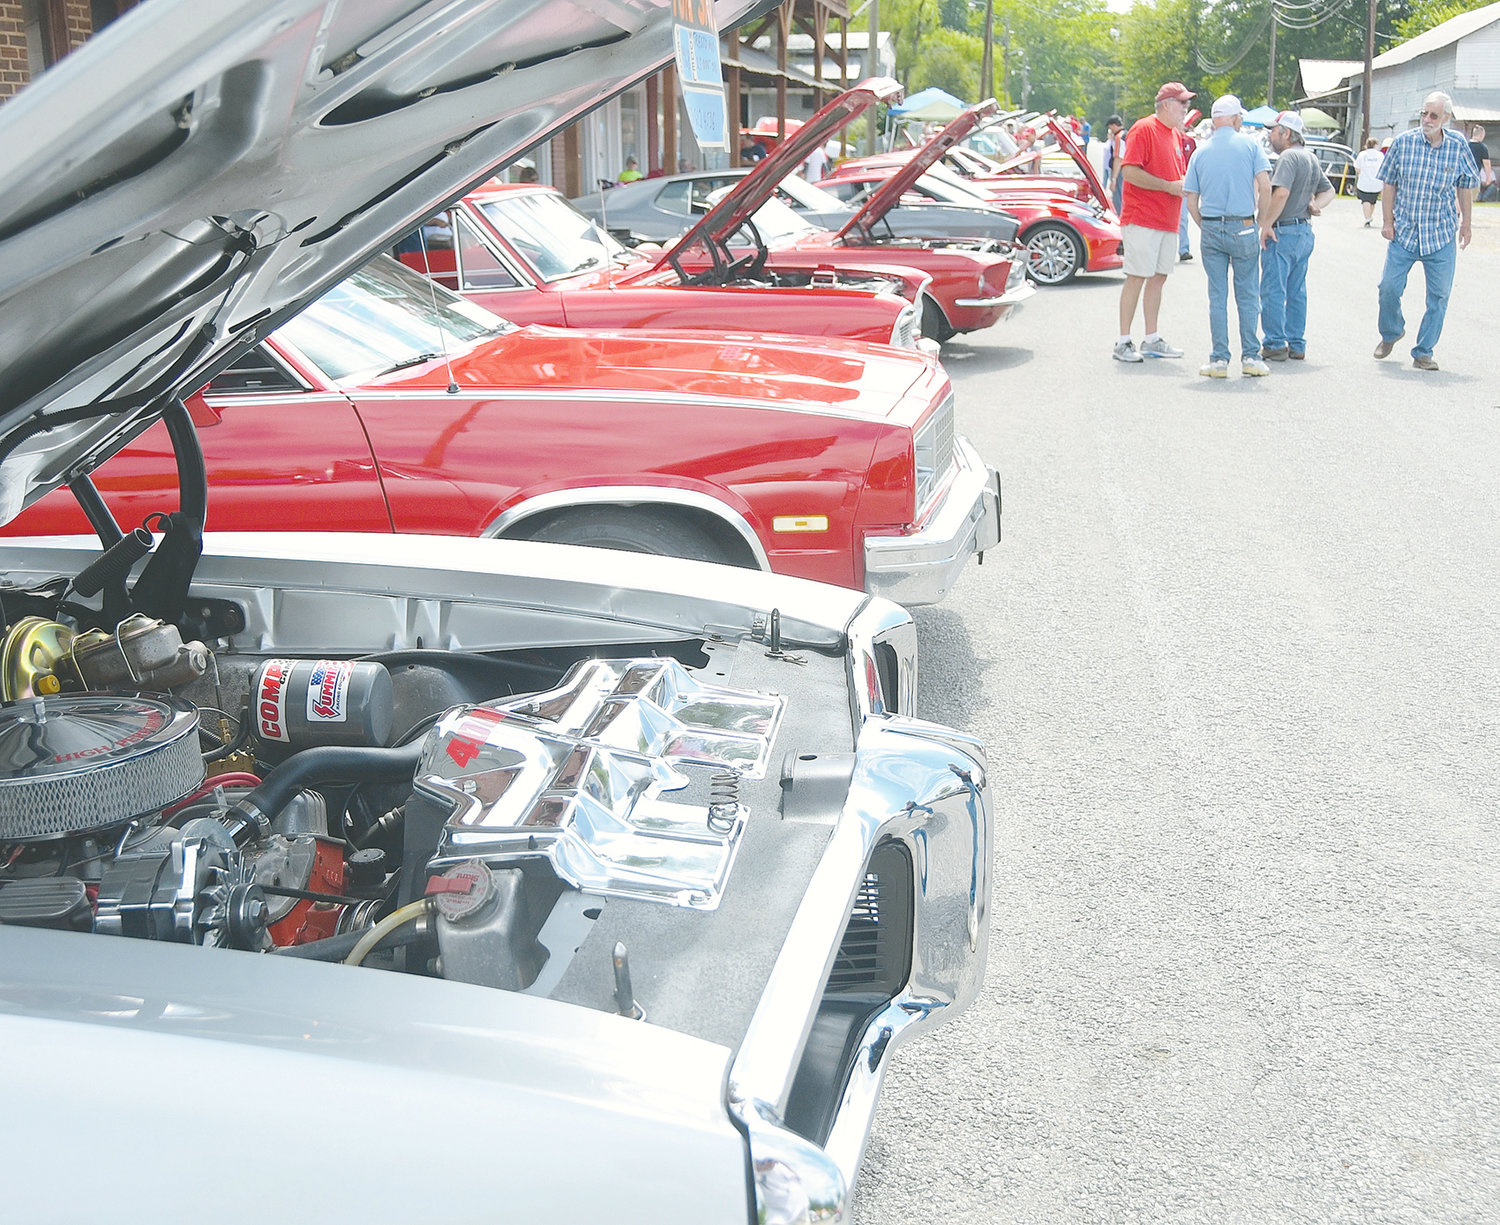 The 24th annual Nauvoo Car Show, sponsored by theNauvoo Historical Society, will be held today in Nauvoo, with hundreds of classic vehicles from around the Southeast on display. Registration begins at 7 a.m.